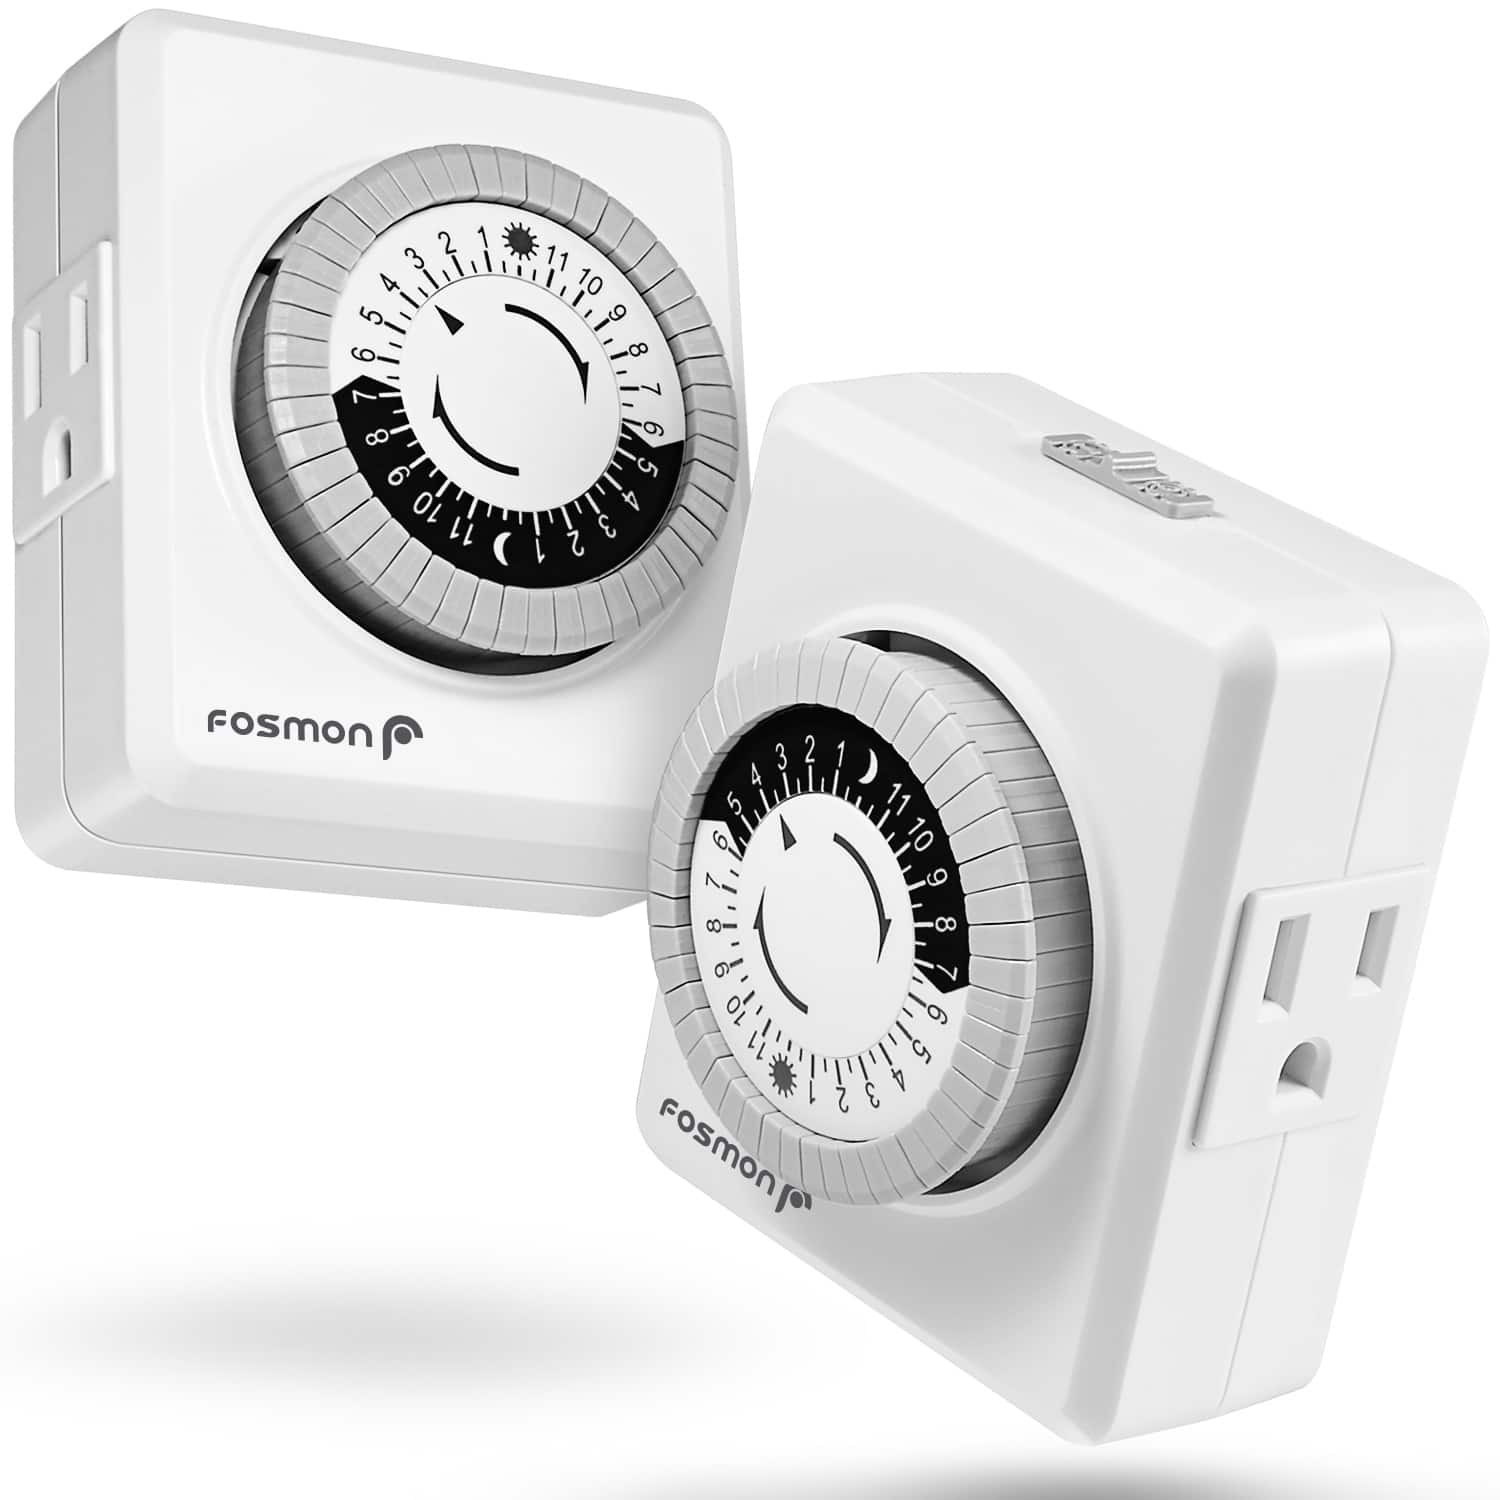 Fosmon Mechanical Indoor/Outdoor Outlet Timers: Starting at $4.50 + FS